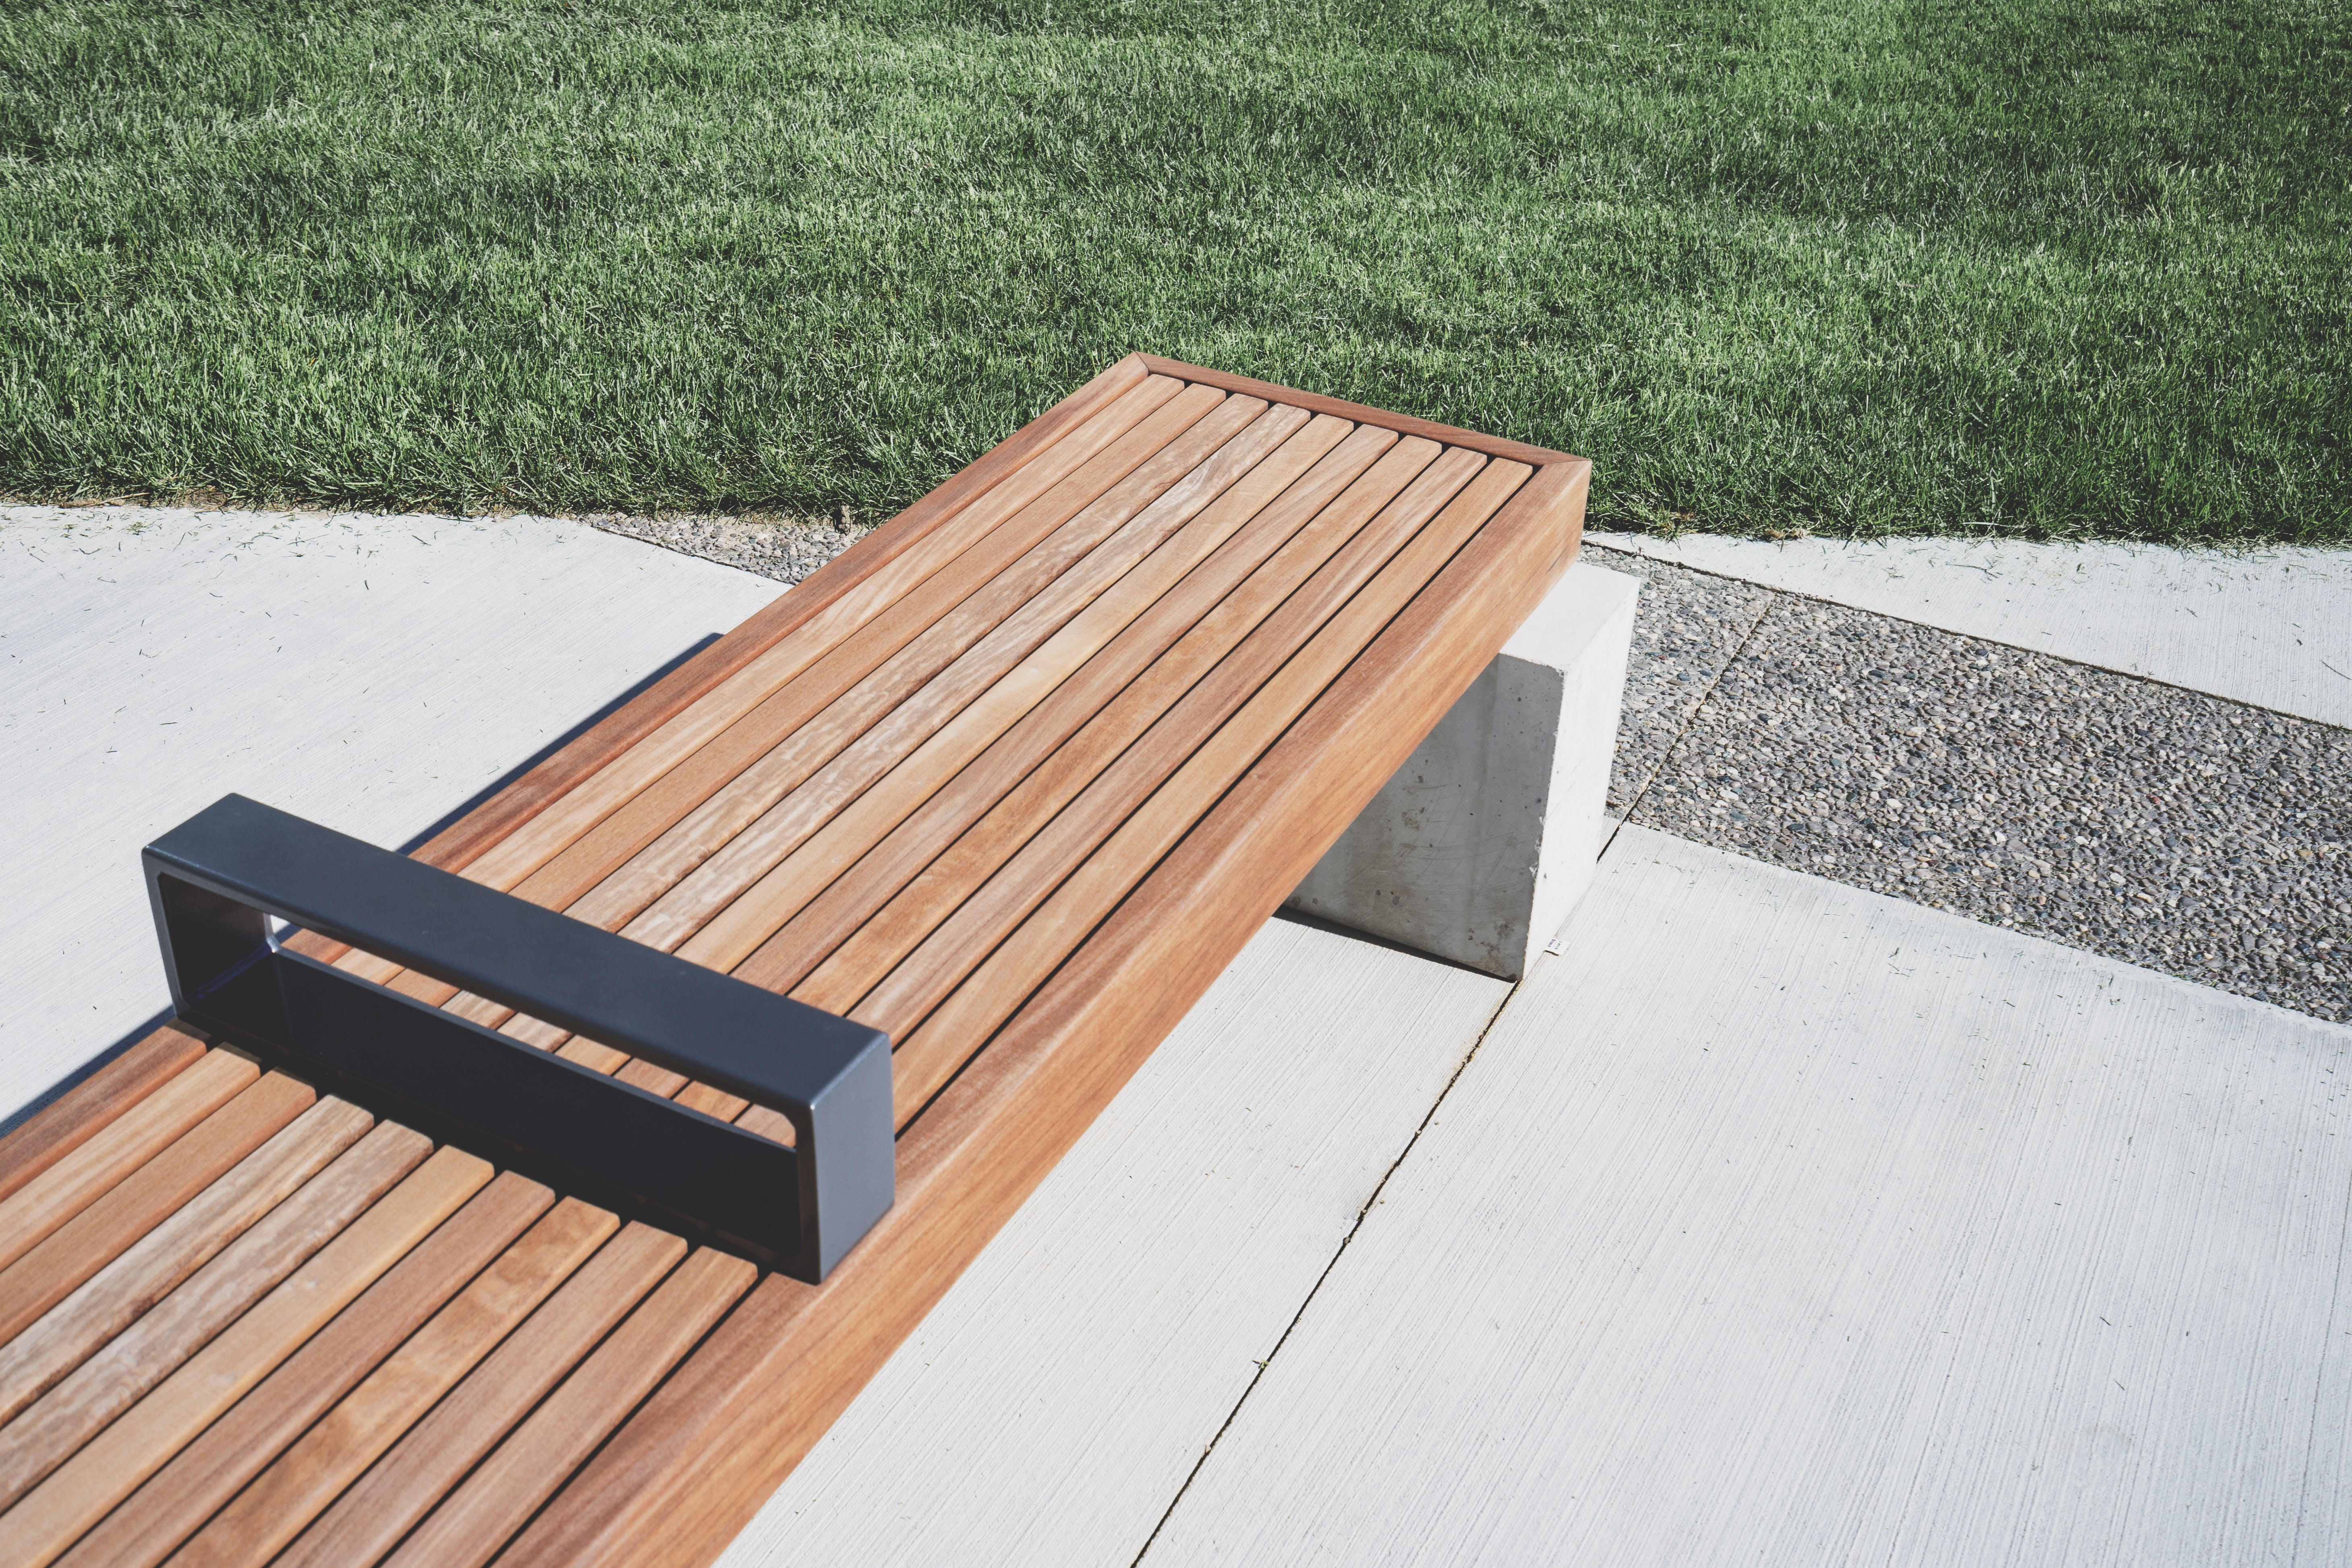 Photo of Wooden Bench near Grass